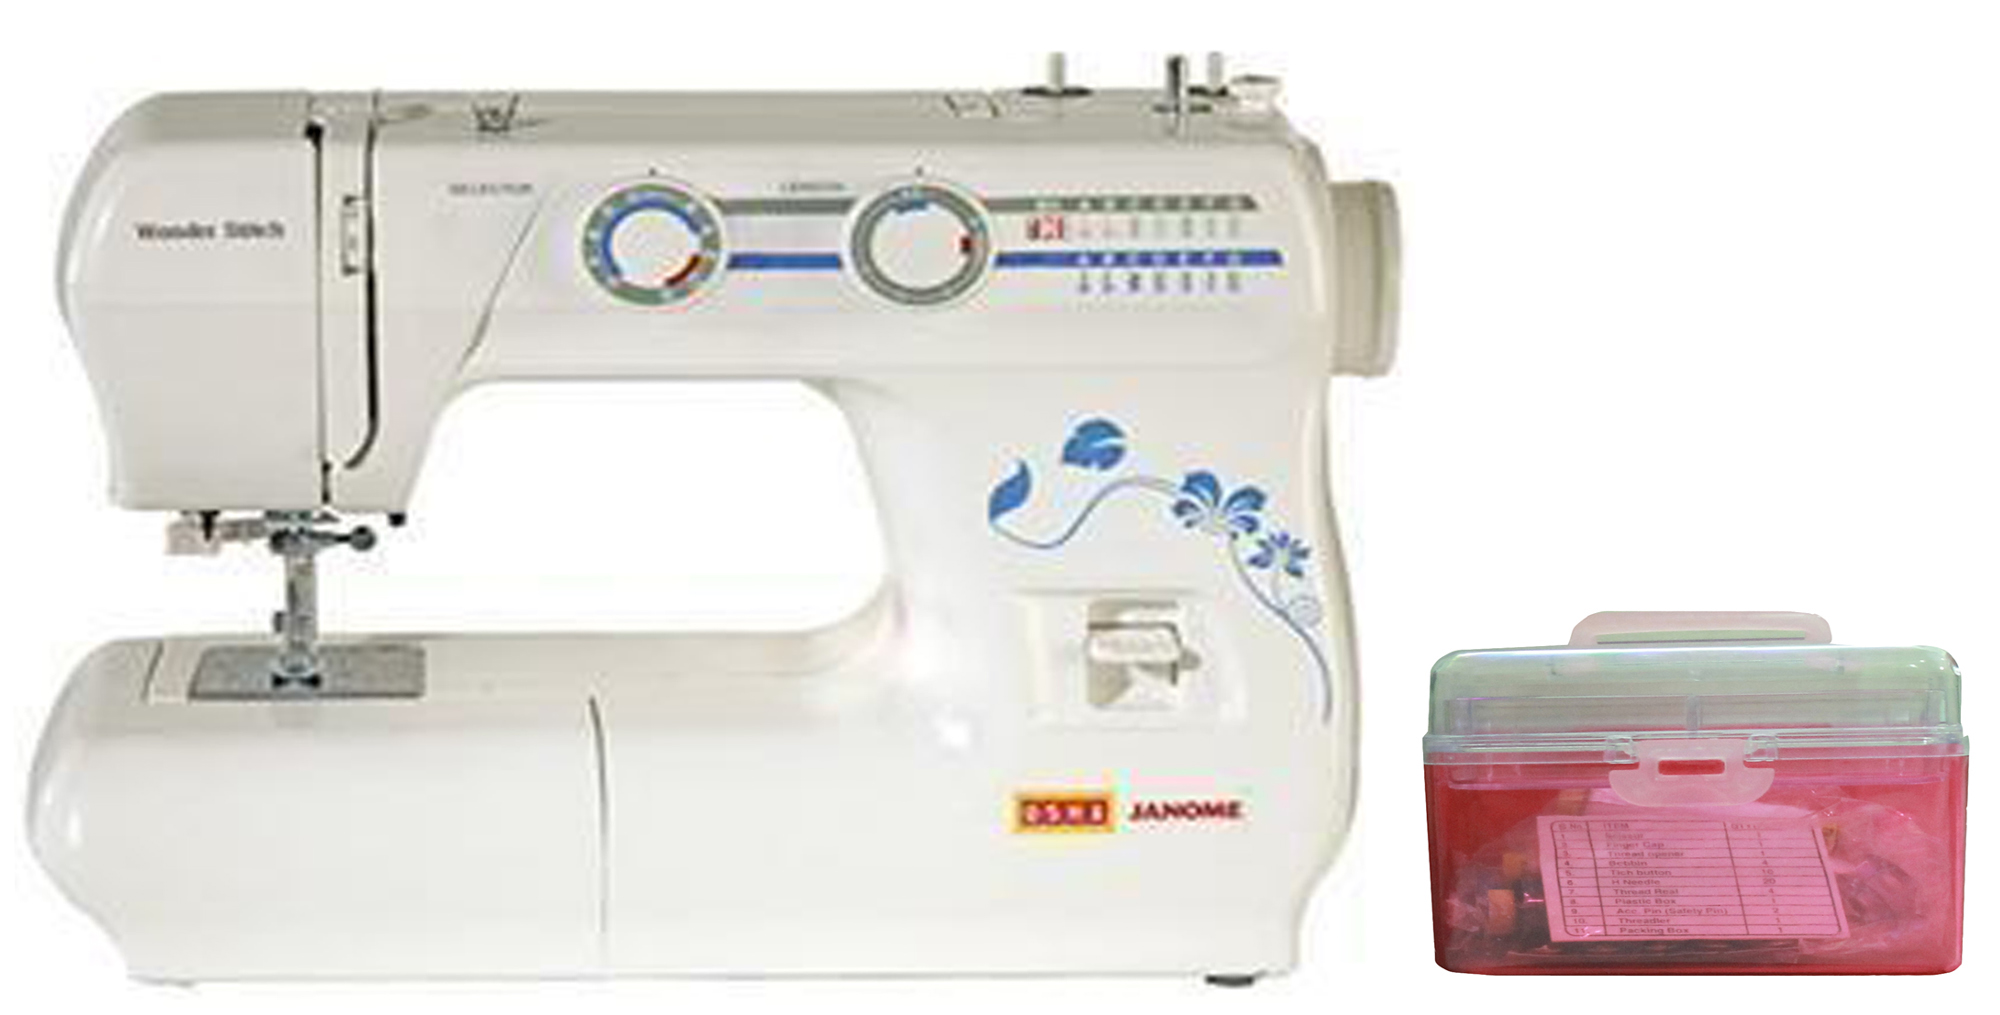 Usha Wonder Stitch Automatic Sewing Machine + Usha Sewing Kit available at ShopClues for Rs.11050